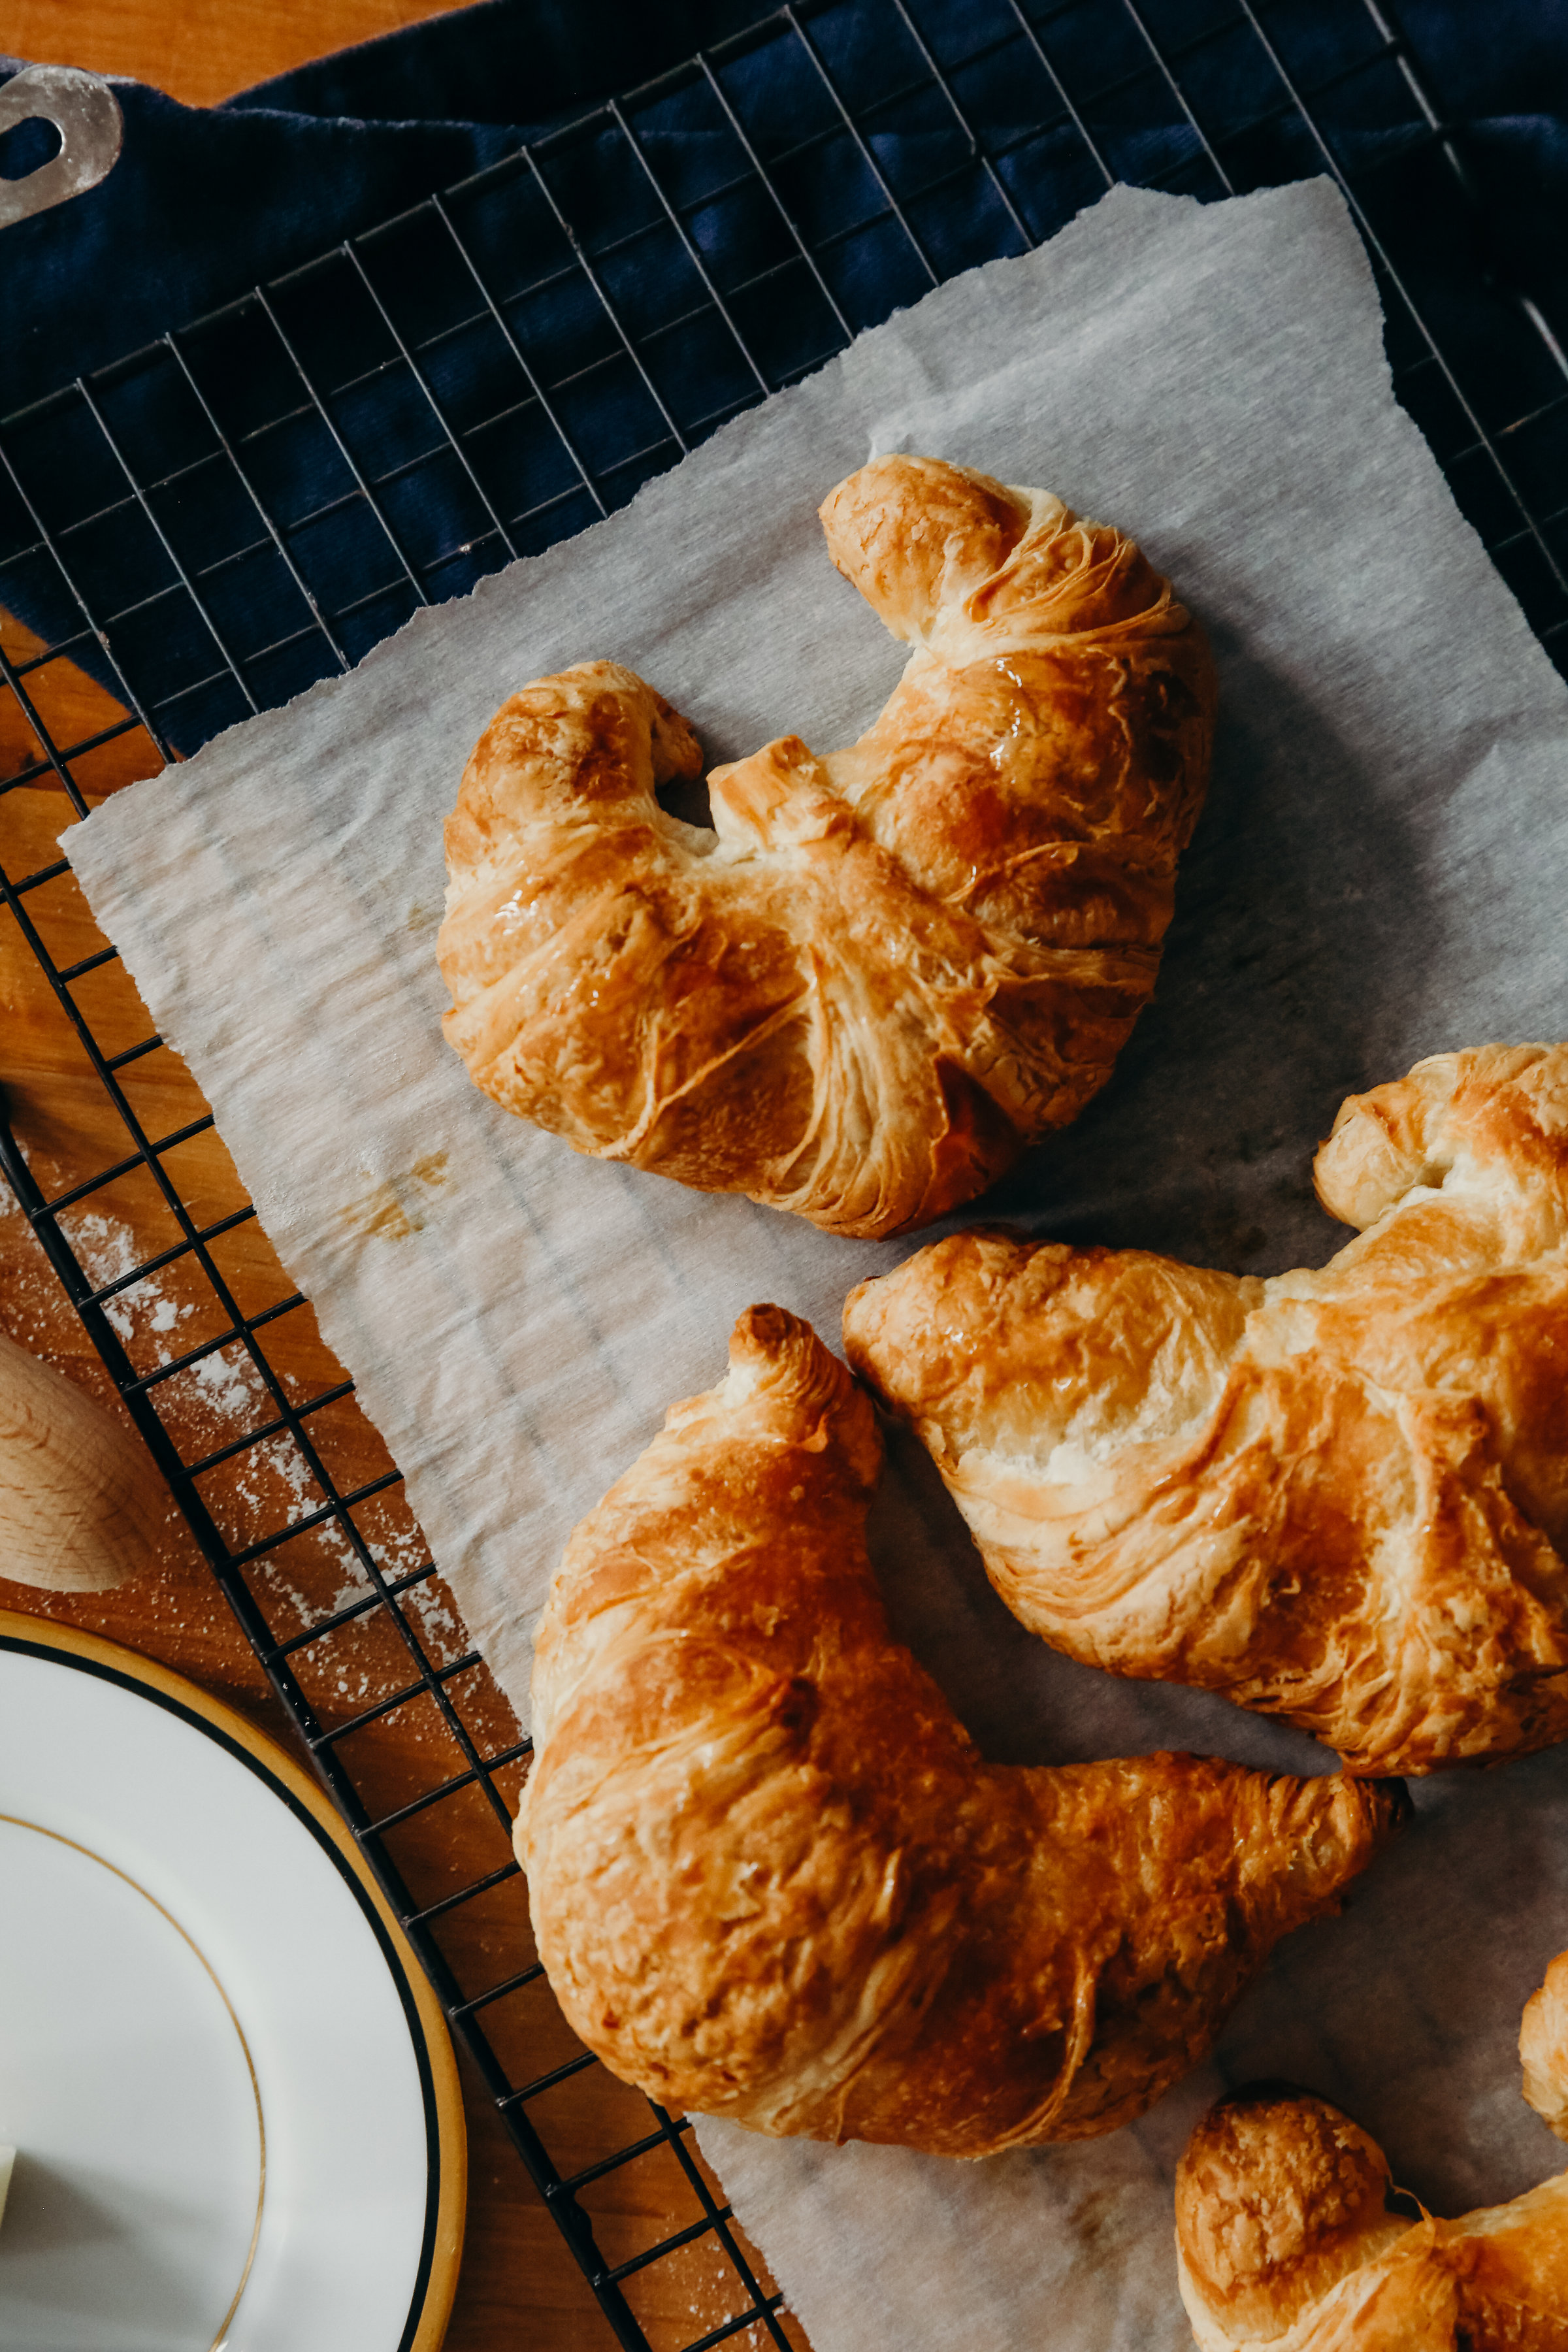 Croissants and Kitchen Baking | Food Photography | Hillary Jeanne Photography